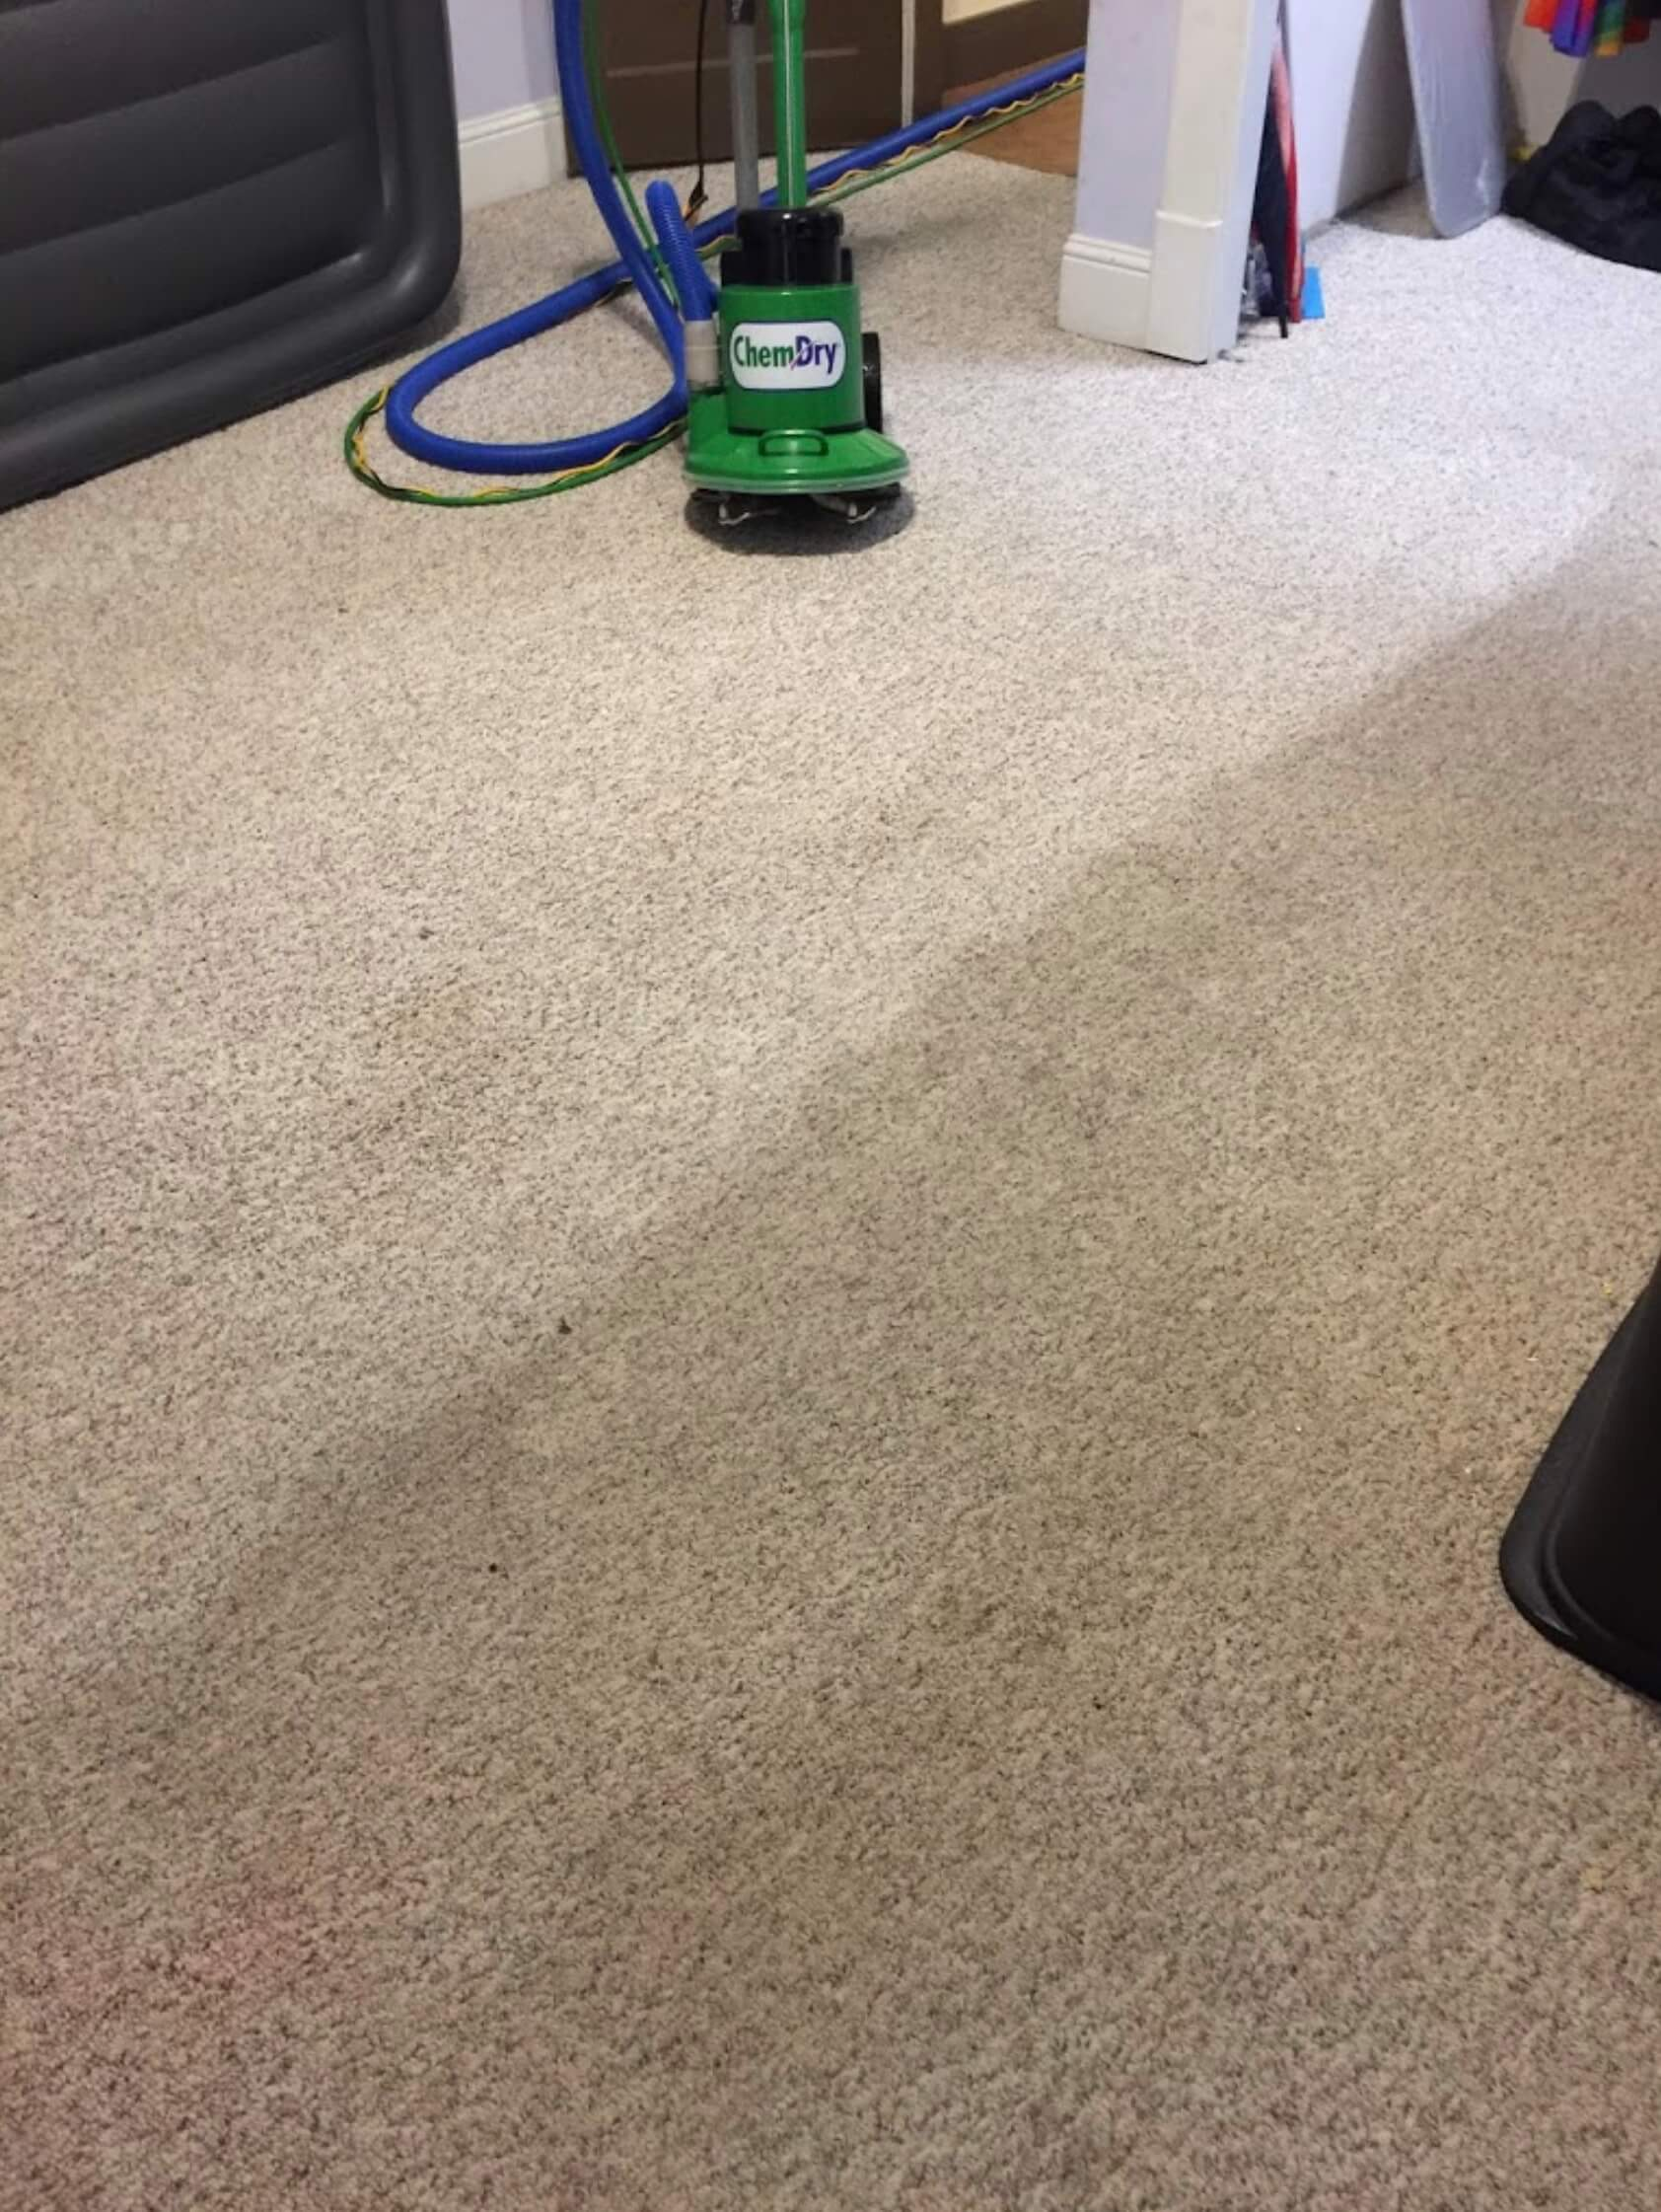 Carpet Cleaning Nashville Carpet Cleaning Tnt Chem Dry